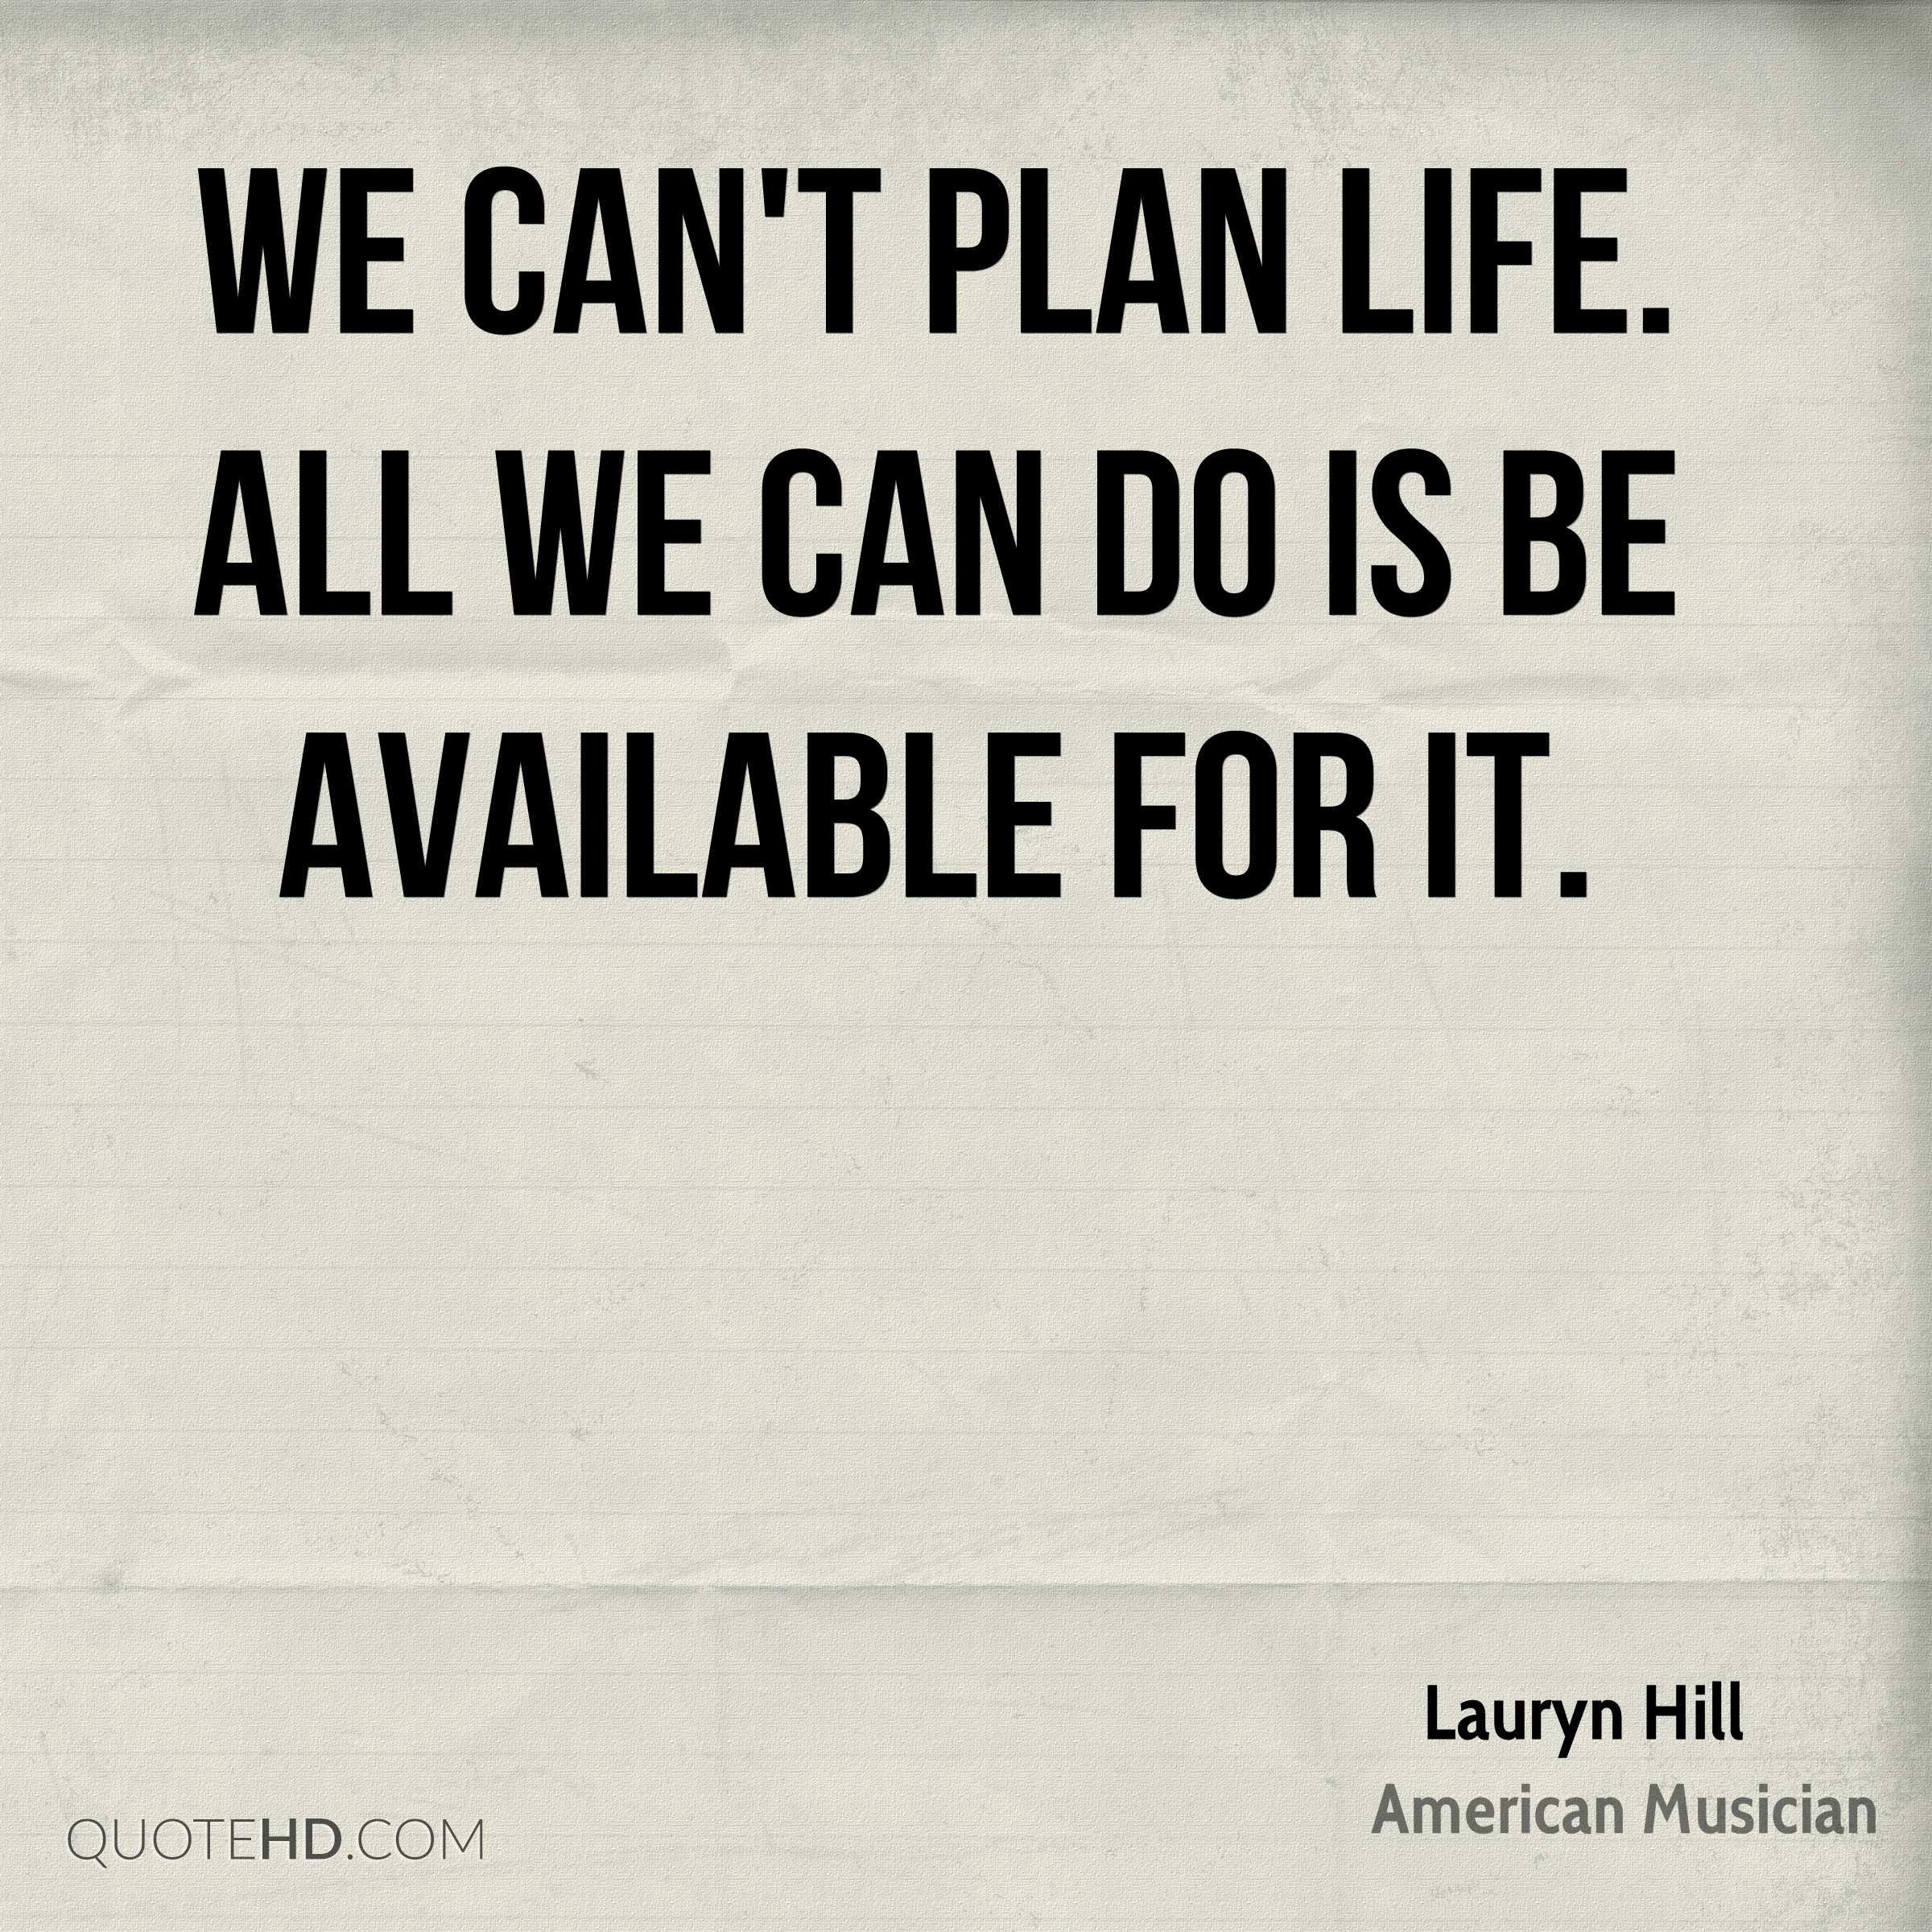 We can't plan life. All we can do is be available for it.